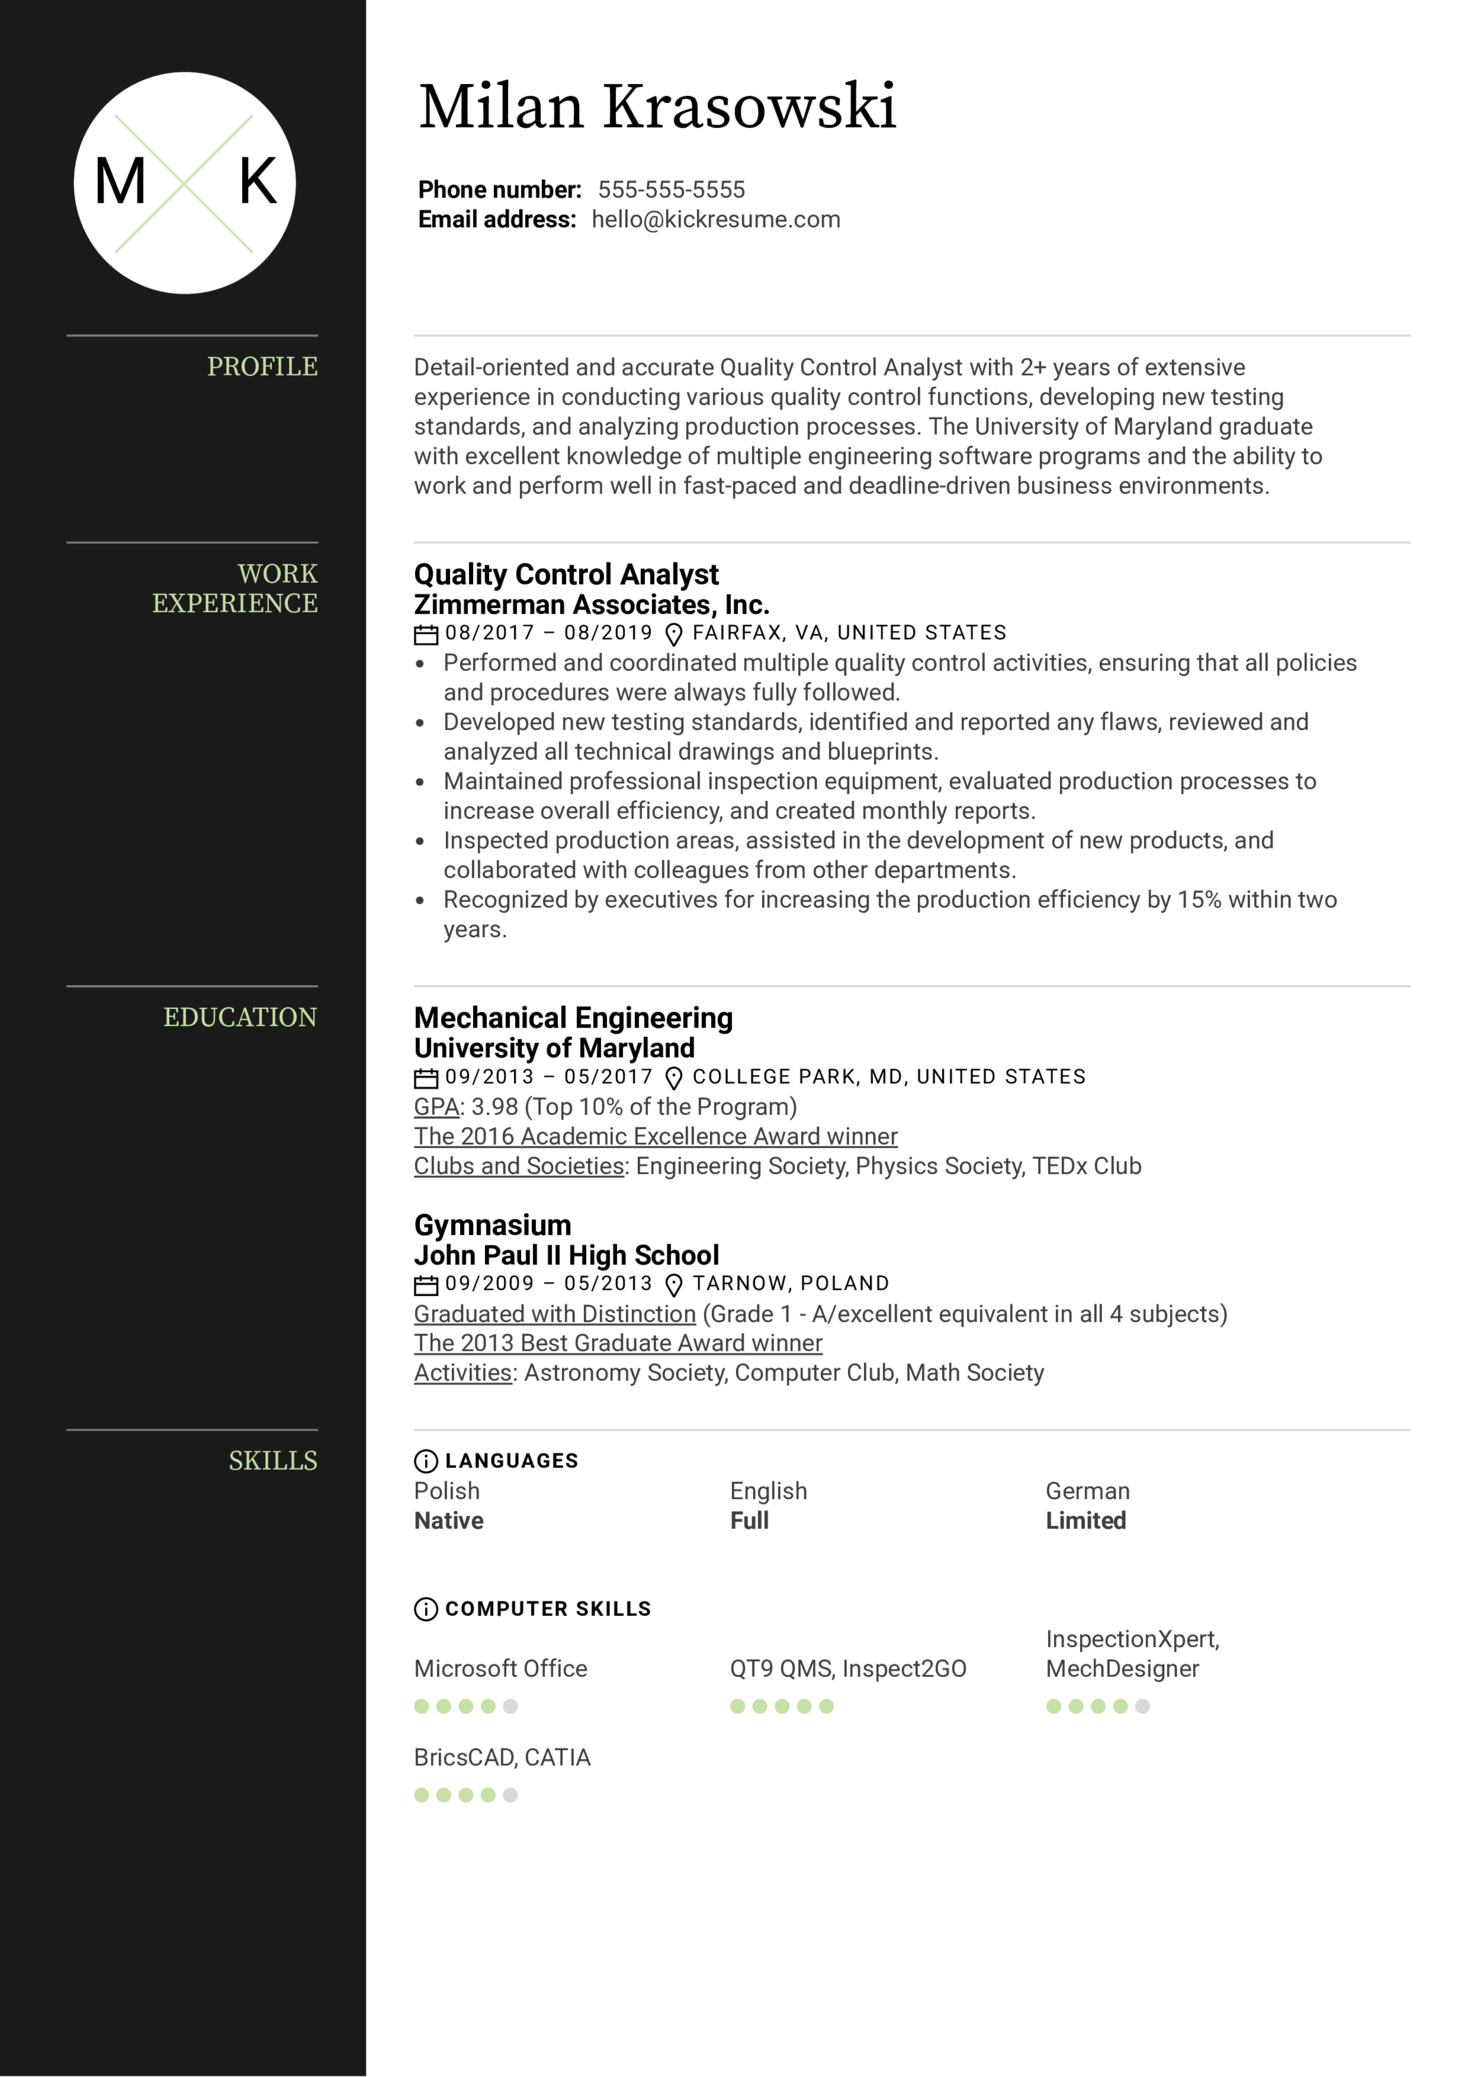 Quality Control Analyst Resume Example (Teil 1)